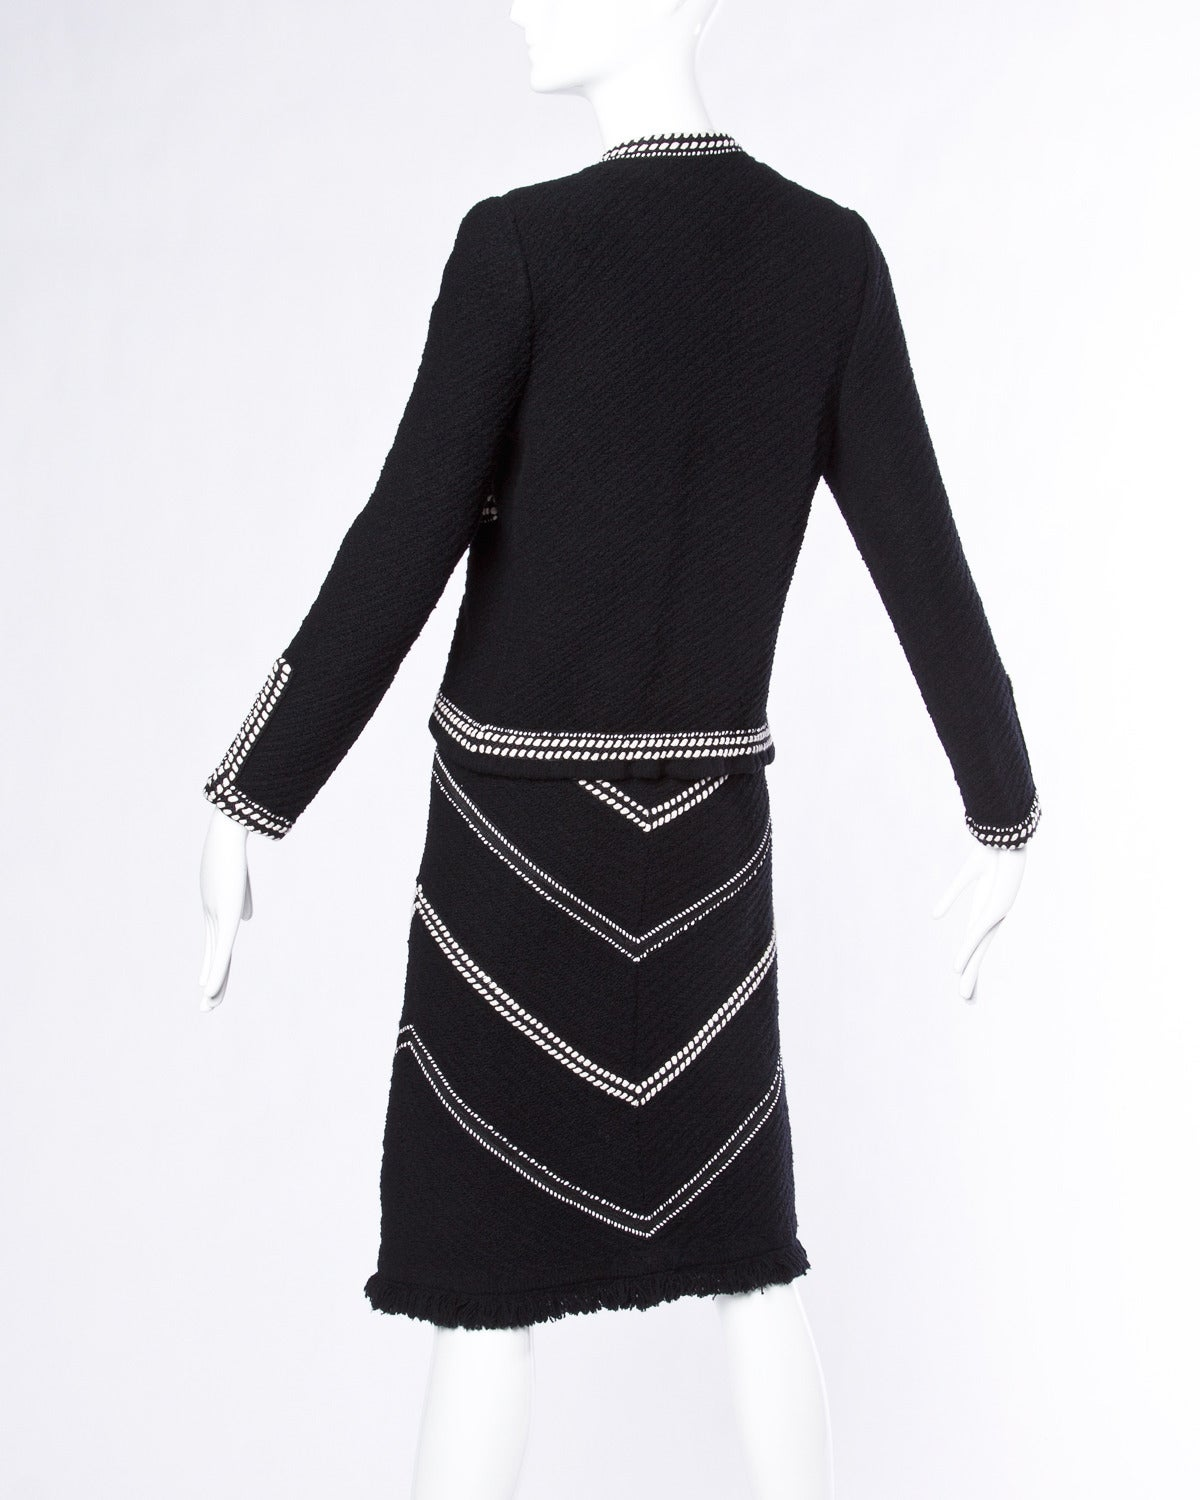 Two piece skirt suit in black and white boucle wool by Adolfo. Chevron stripes and fringe trim.  Details:  White Braid Trim 100% Wool Boucle Knit Open Front Jacket. Pull On Elastic Waist Pencil Skirt Label: Adolfo  Colors: Black /